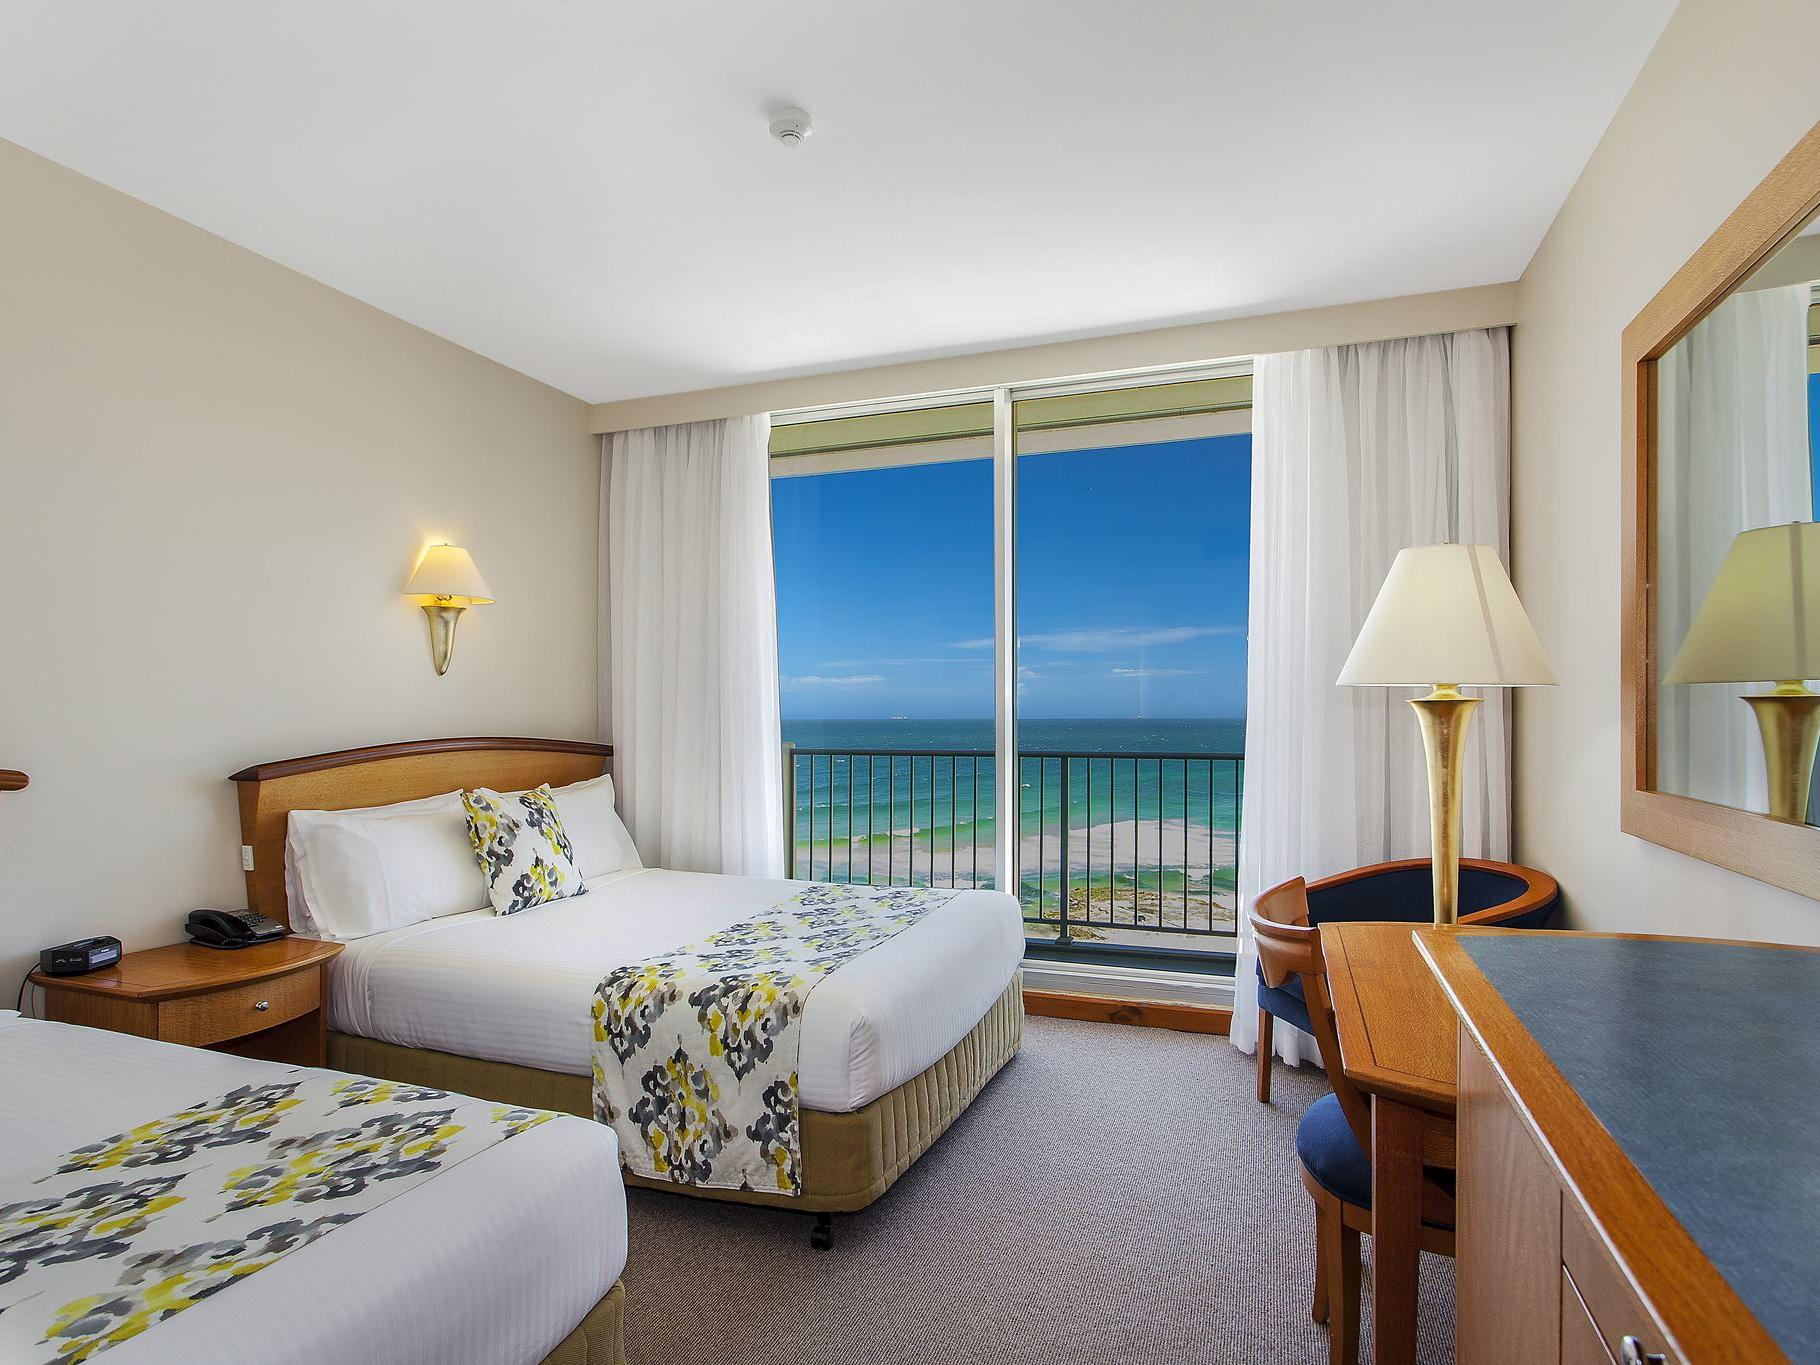 Hotel with twin beds and ocean view